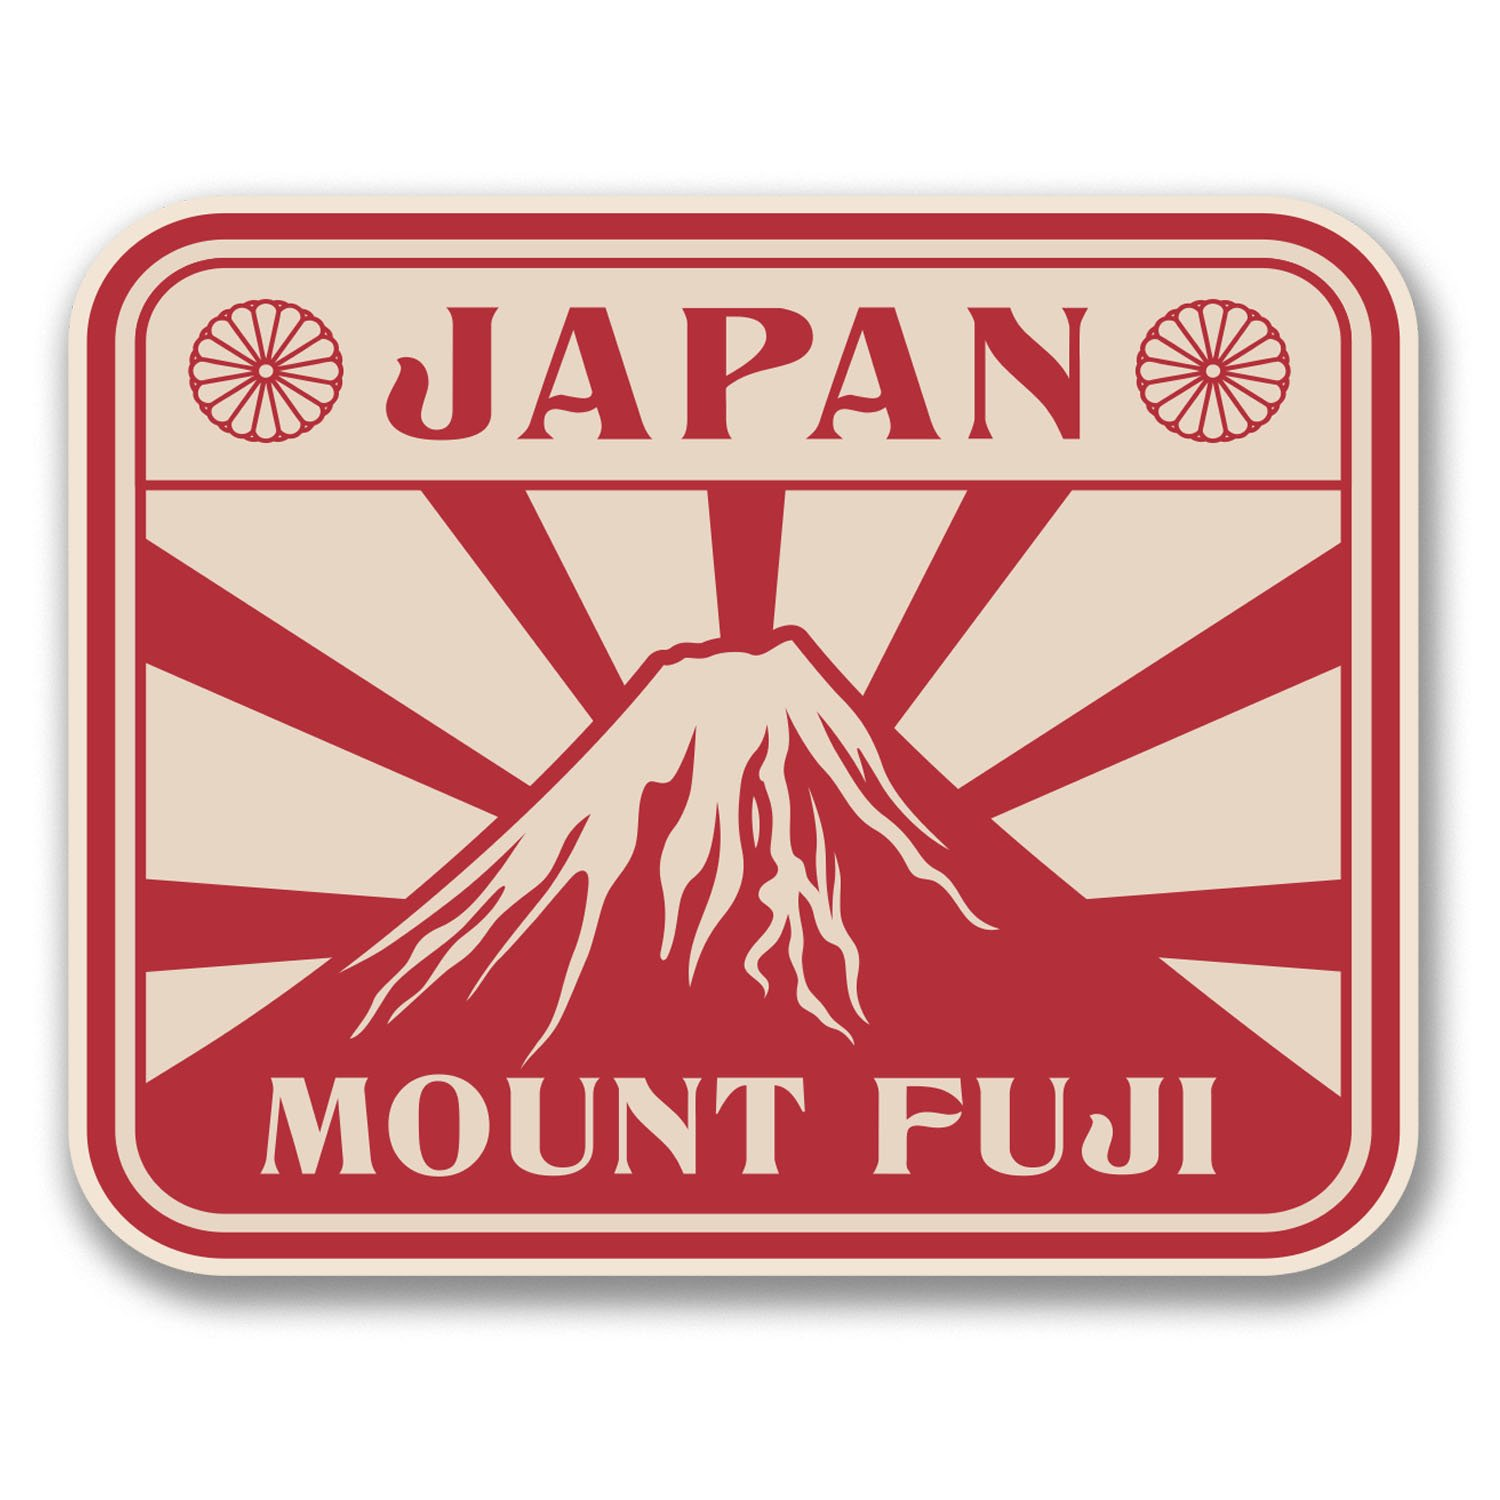 2 x Japan Mount Fuji Vinyl Sticker Laptop Travel Luggage Car #6391